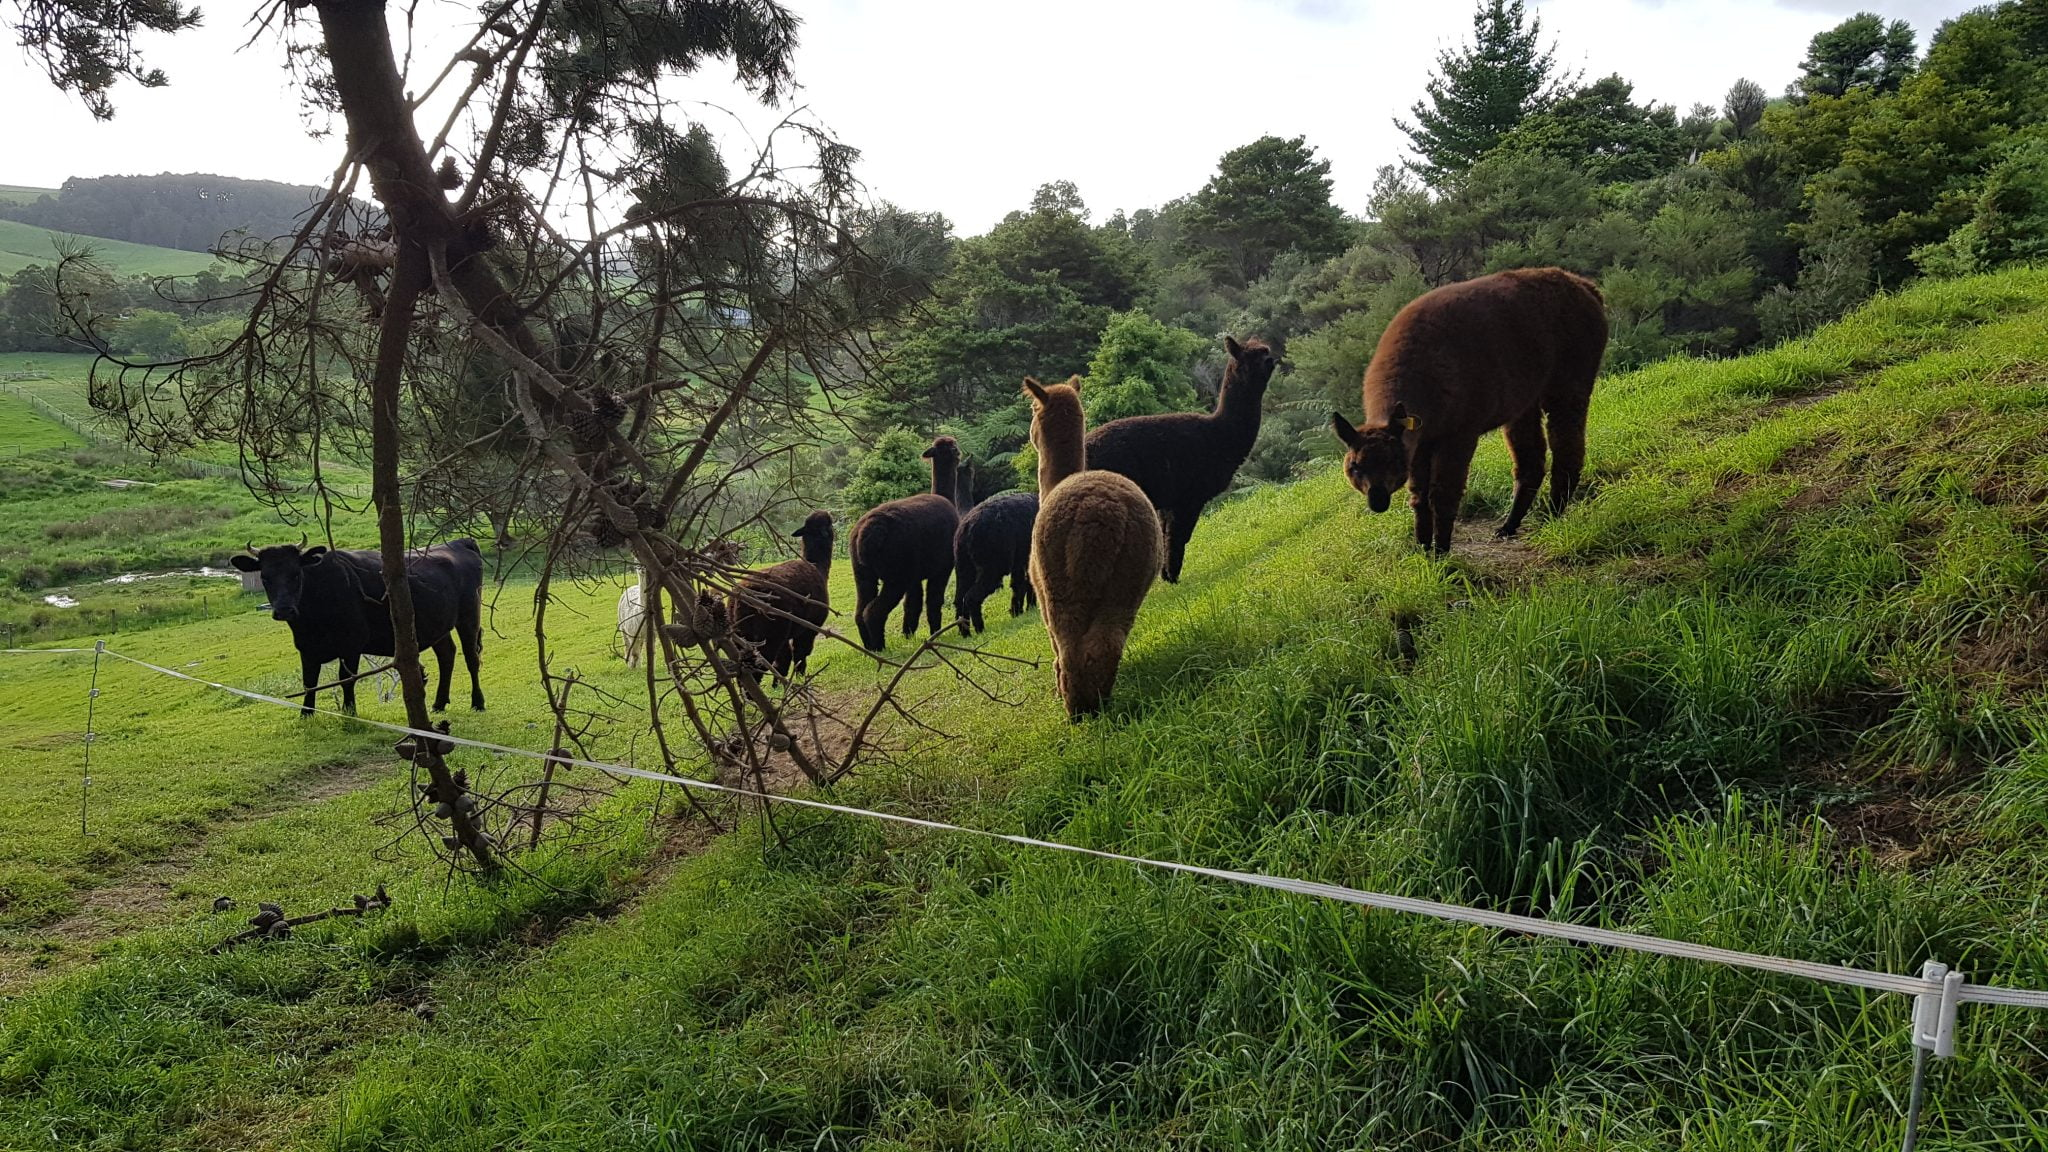 Bunch of alapacas on a green grassy hill behind some white electric tape fence